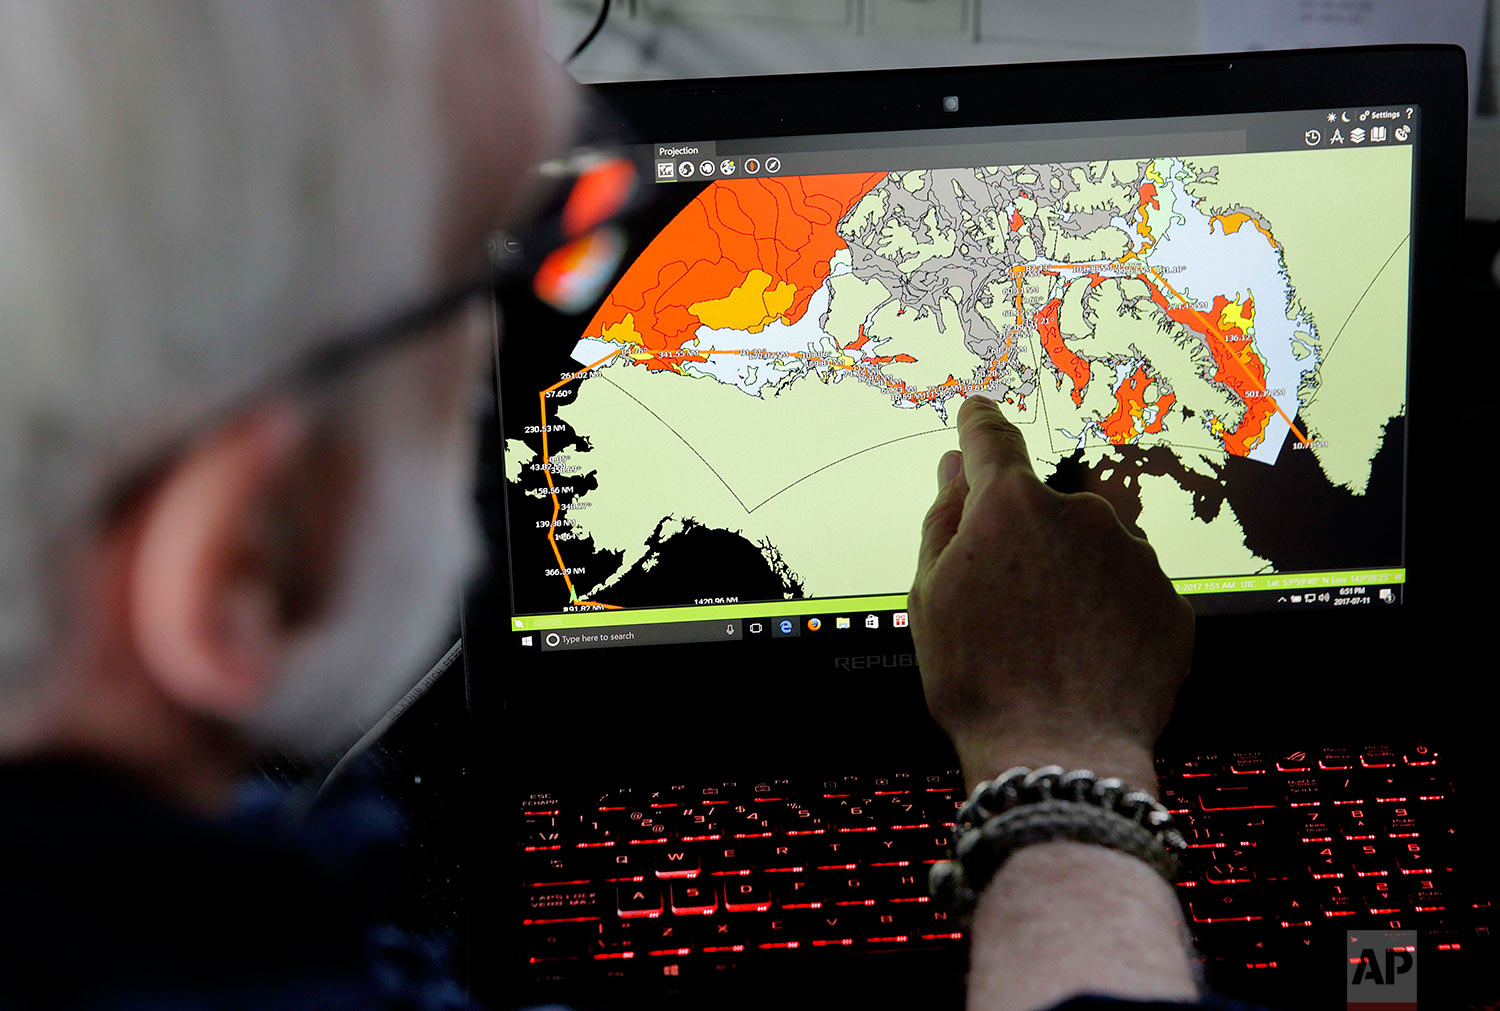 """Canadian ice navigator, David """"Duke"""" Snider shows the route the Finnish icebreaker MSV Nordica will navigate on a map of current sea ice conditions as the ship sails north in the Bering Sea Tuesday, July 11, 2017. A group of international researchers is sailing into the Arctic Sea aboard the Finnish icebreaker to traverse the Northwest Passage and record the environmental and social changes that are taking place in one of the most forbidding corners of the world. (AP Photo/David Goldman)"""